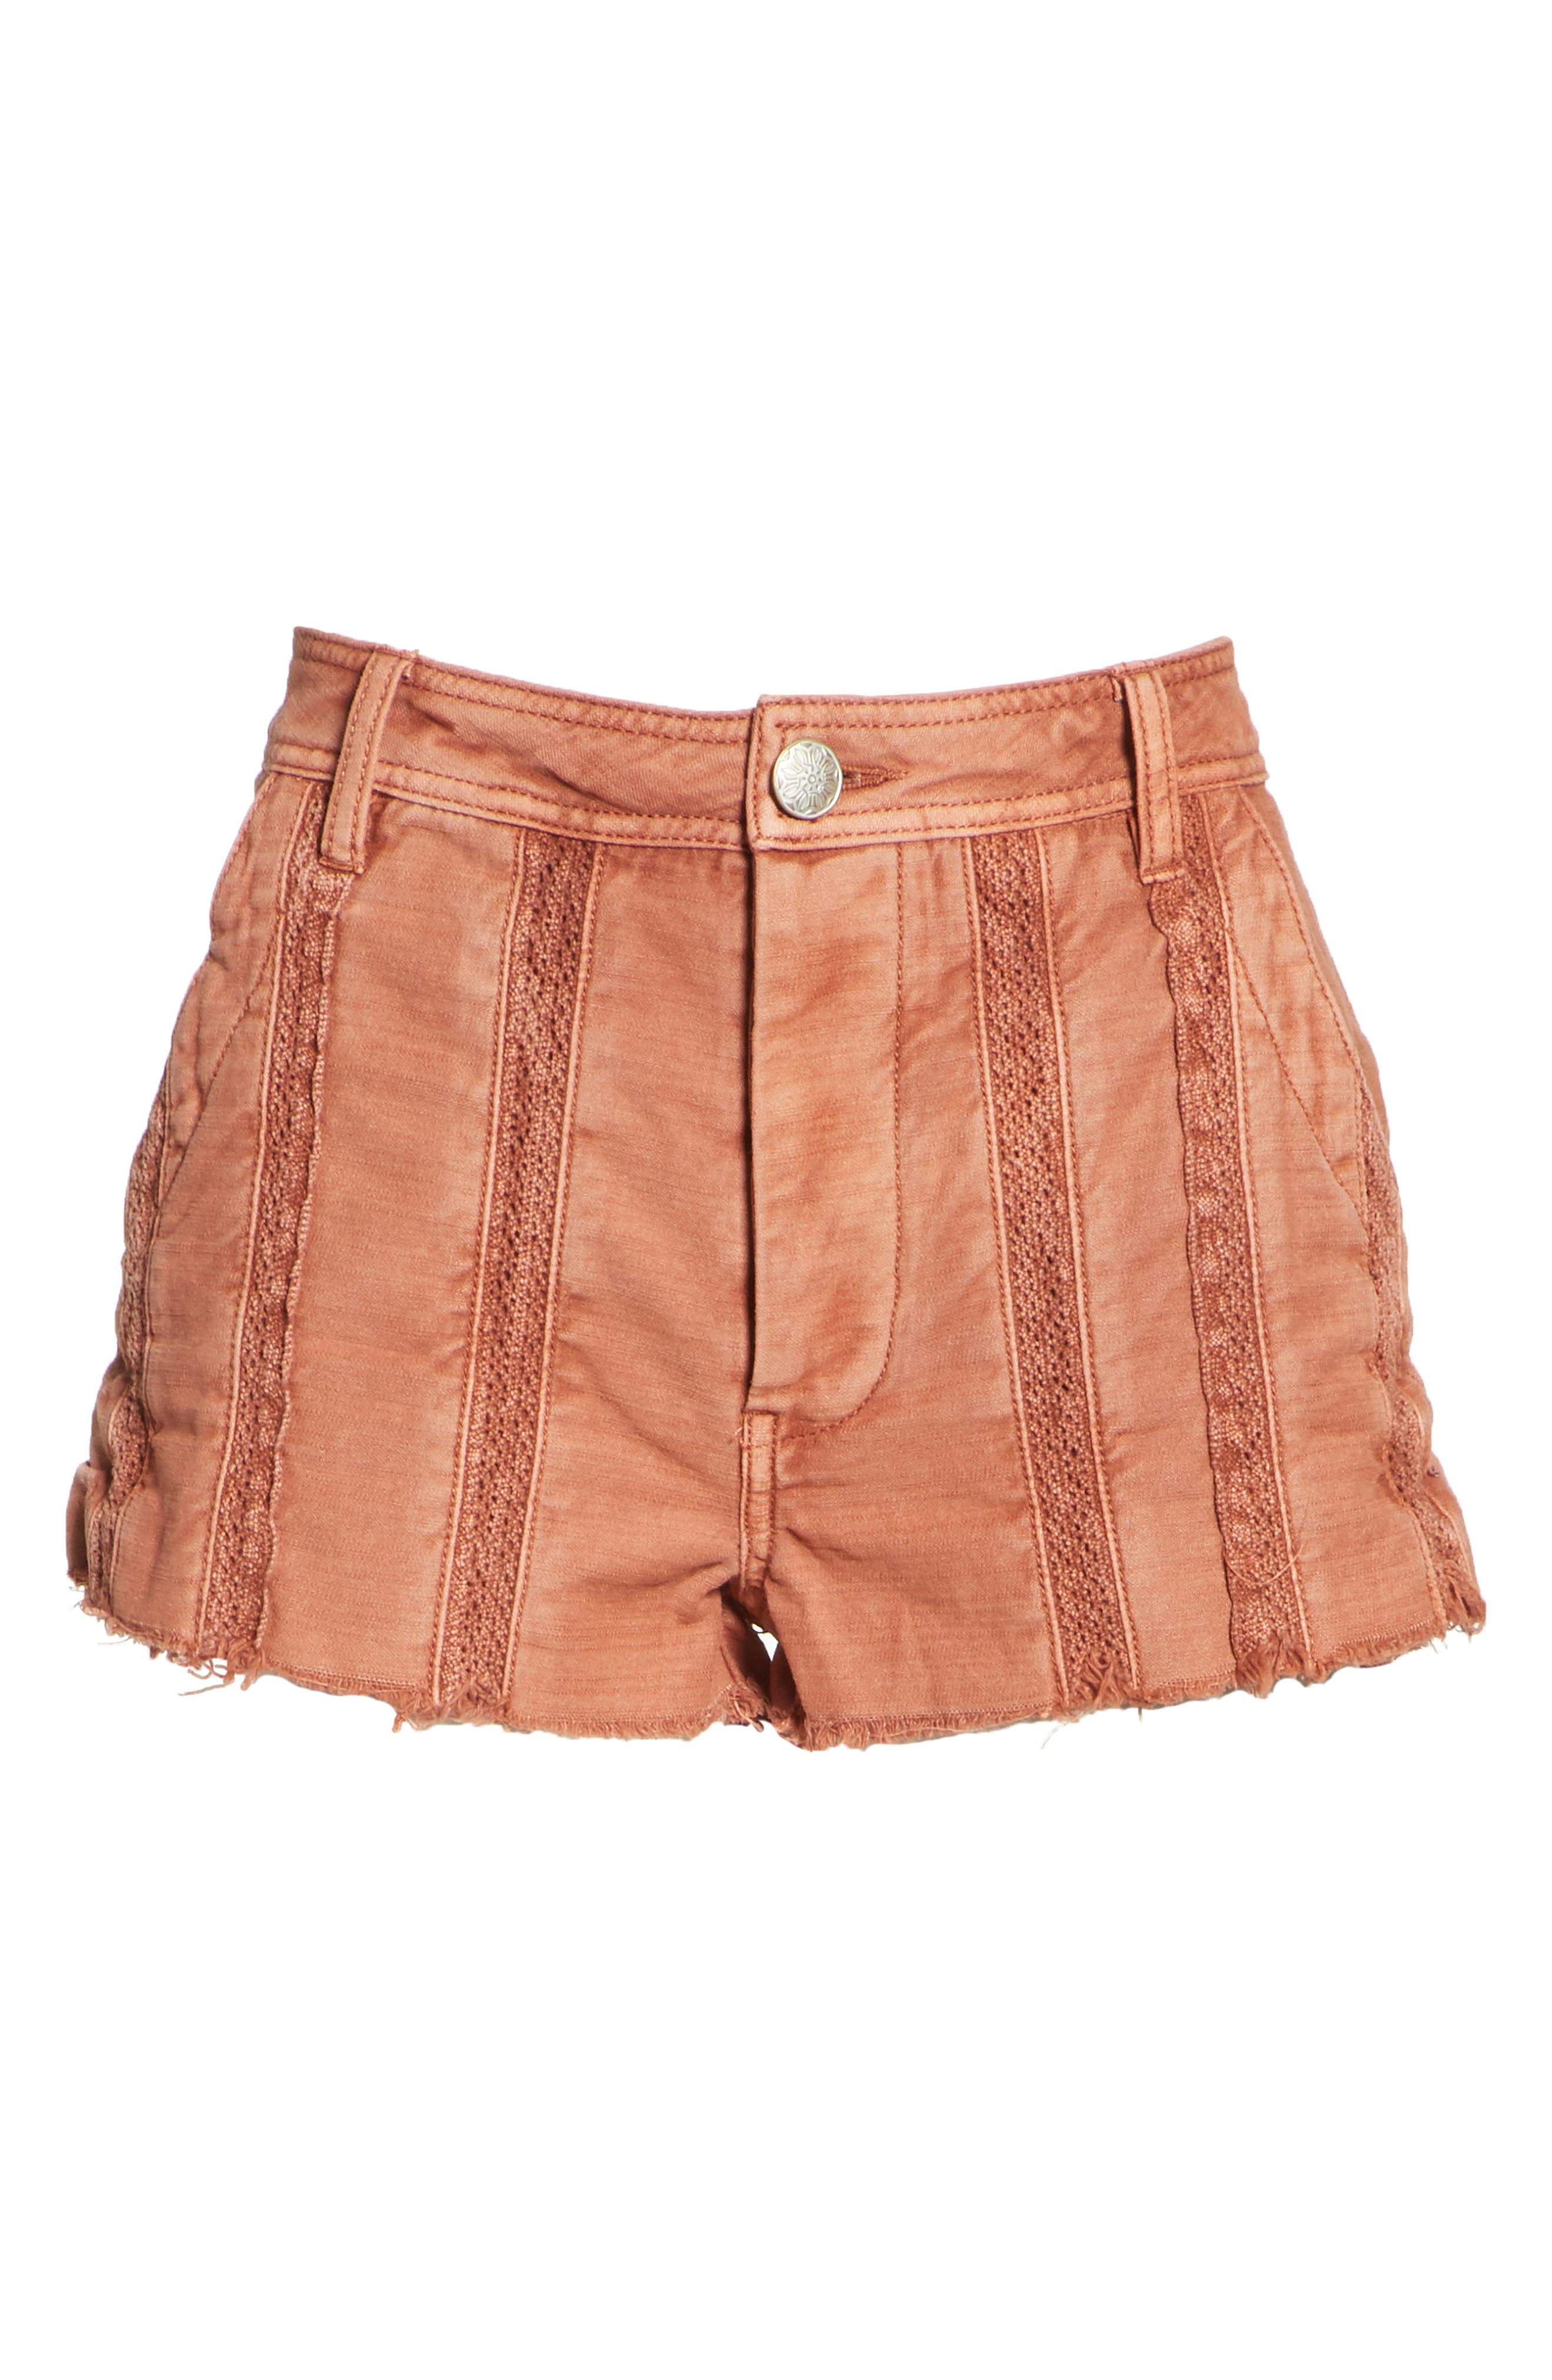 Great Expectations Lace Cutout Shorts,                             Alternate thumbnail 6, color,                             Peach